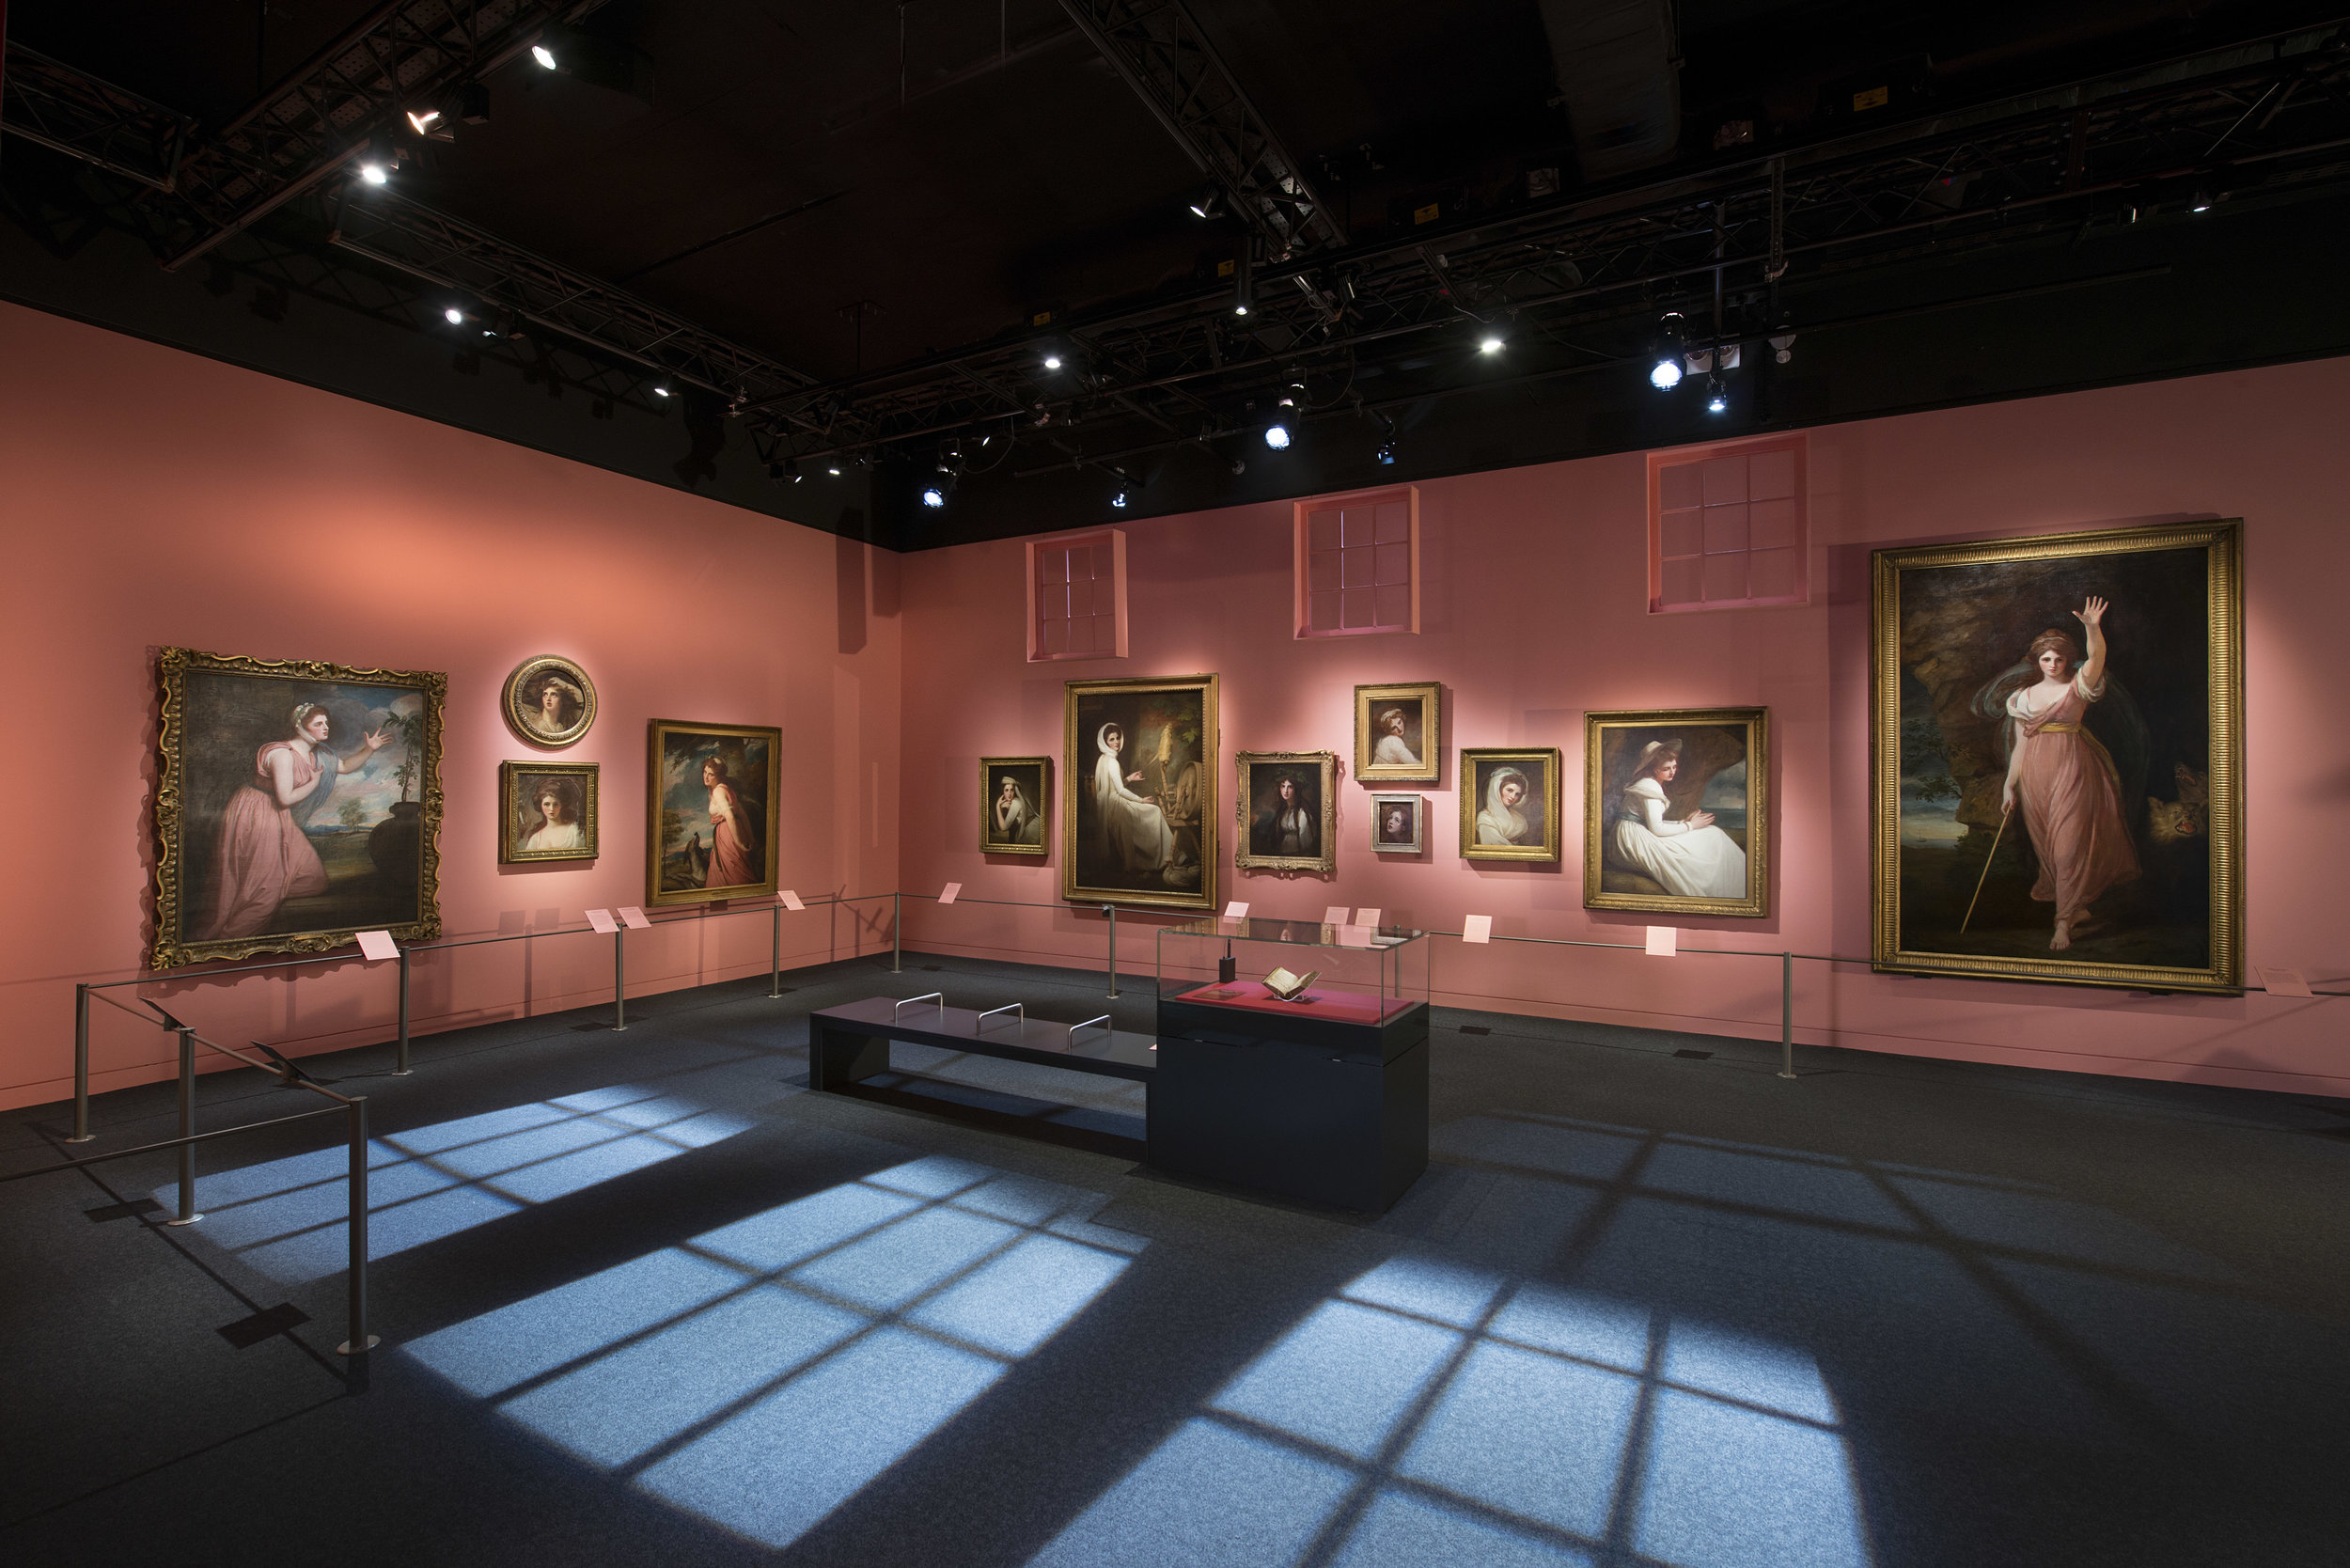 'Muse' conceived as a gallery / artist's Studio featuring the George Romney's paintings of Emma